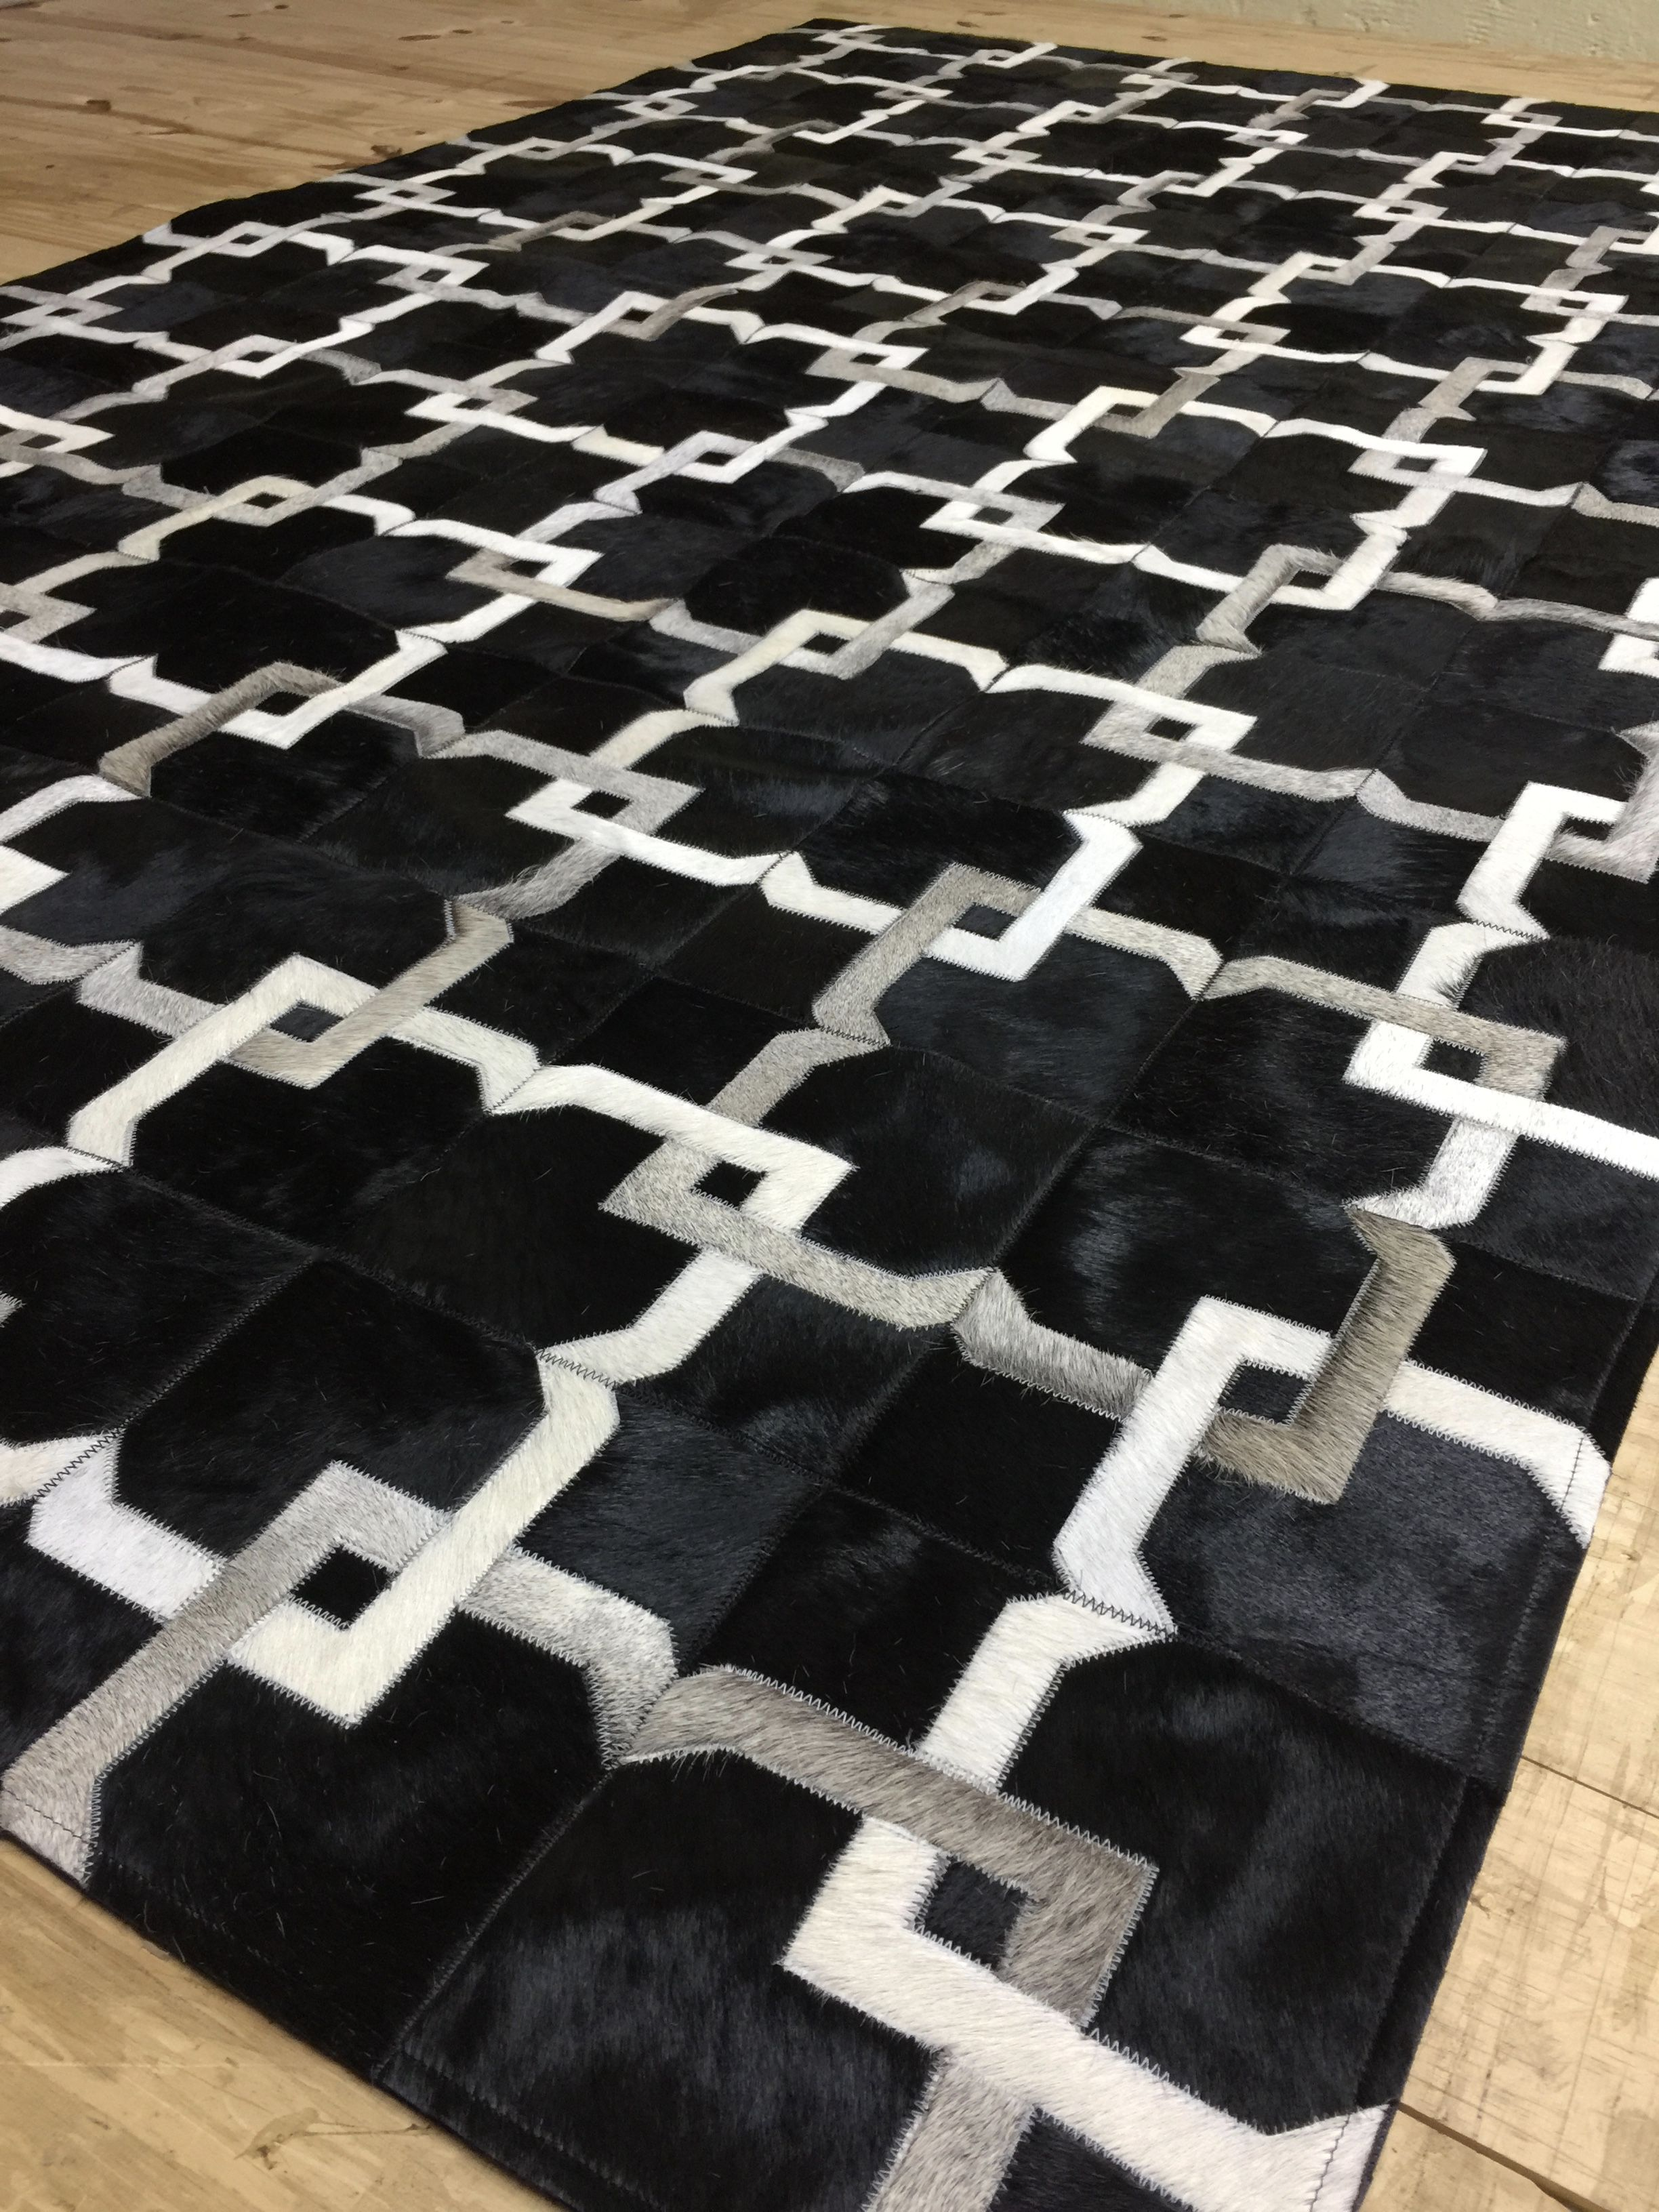 Blackcowhiderug Our Alvear Cowhide Patchwork Rug In Black Off White Grey